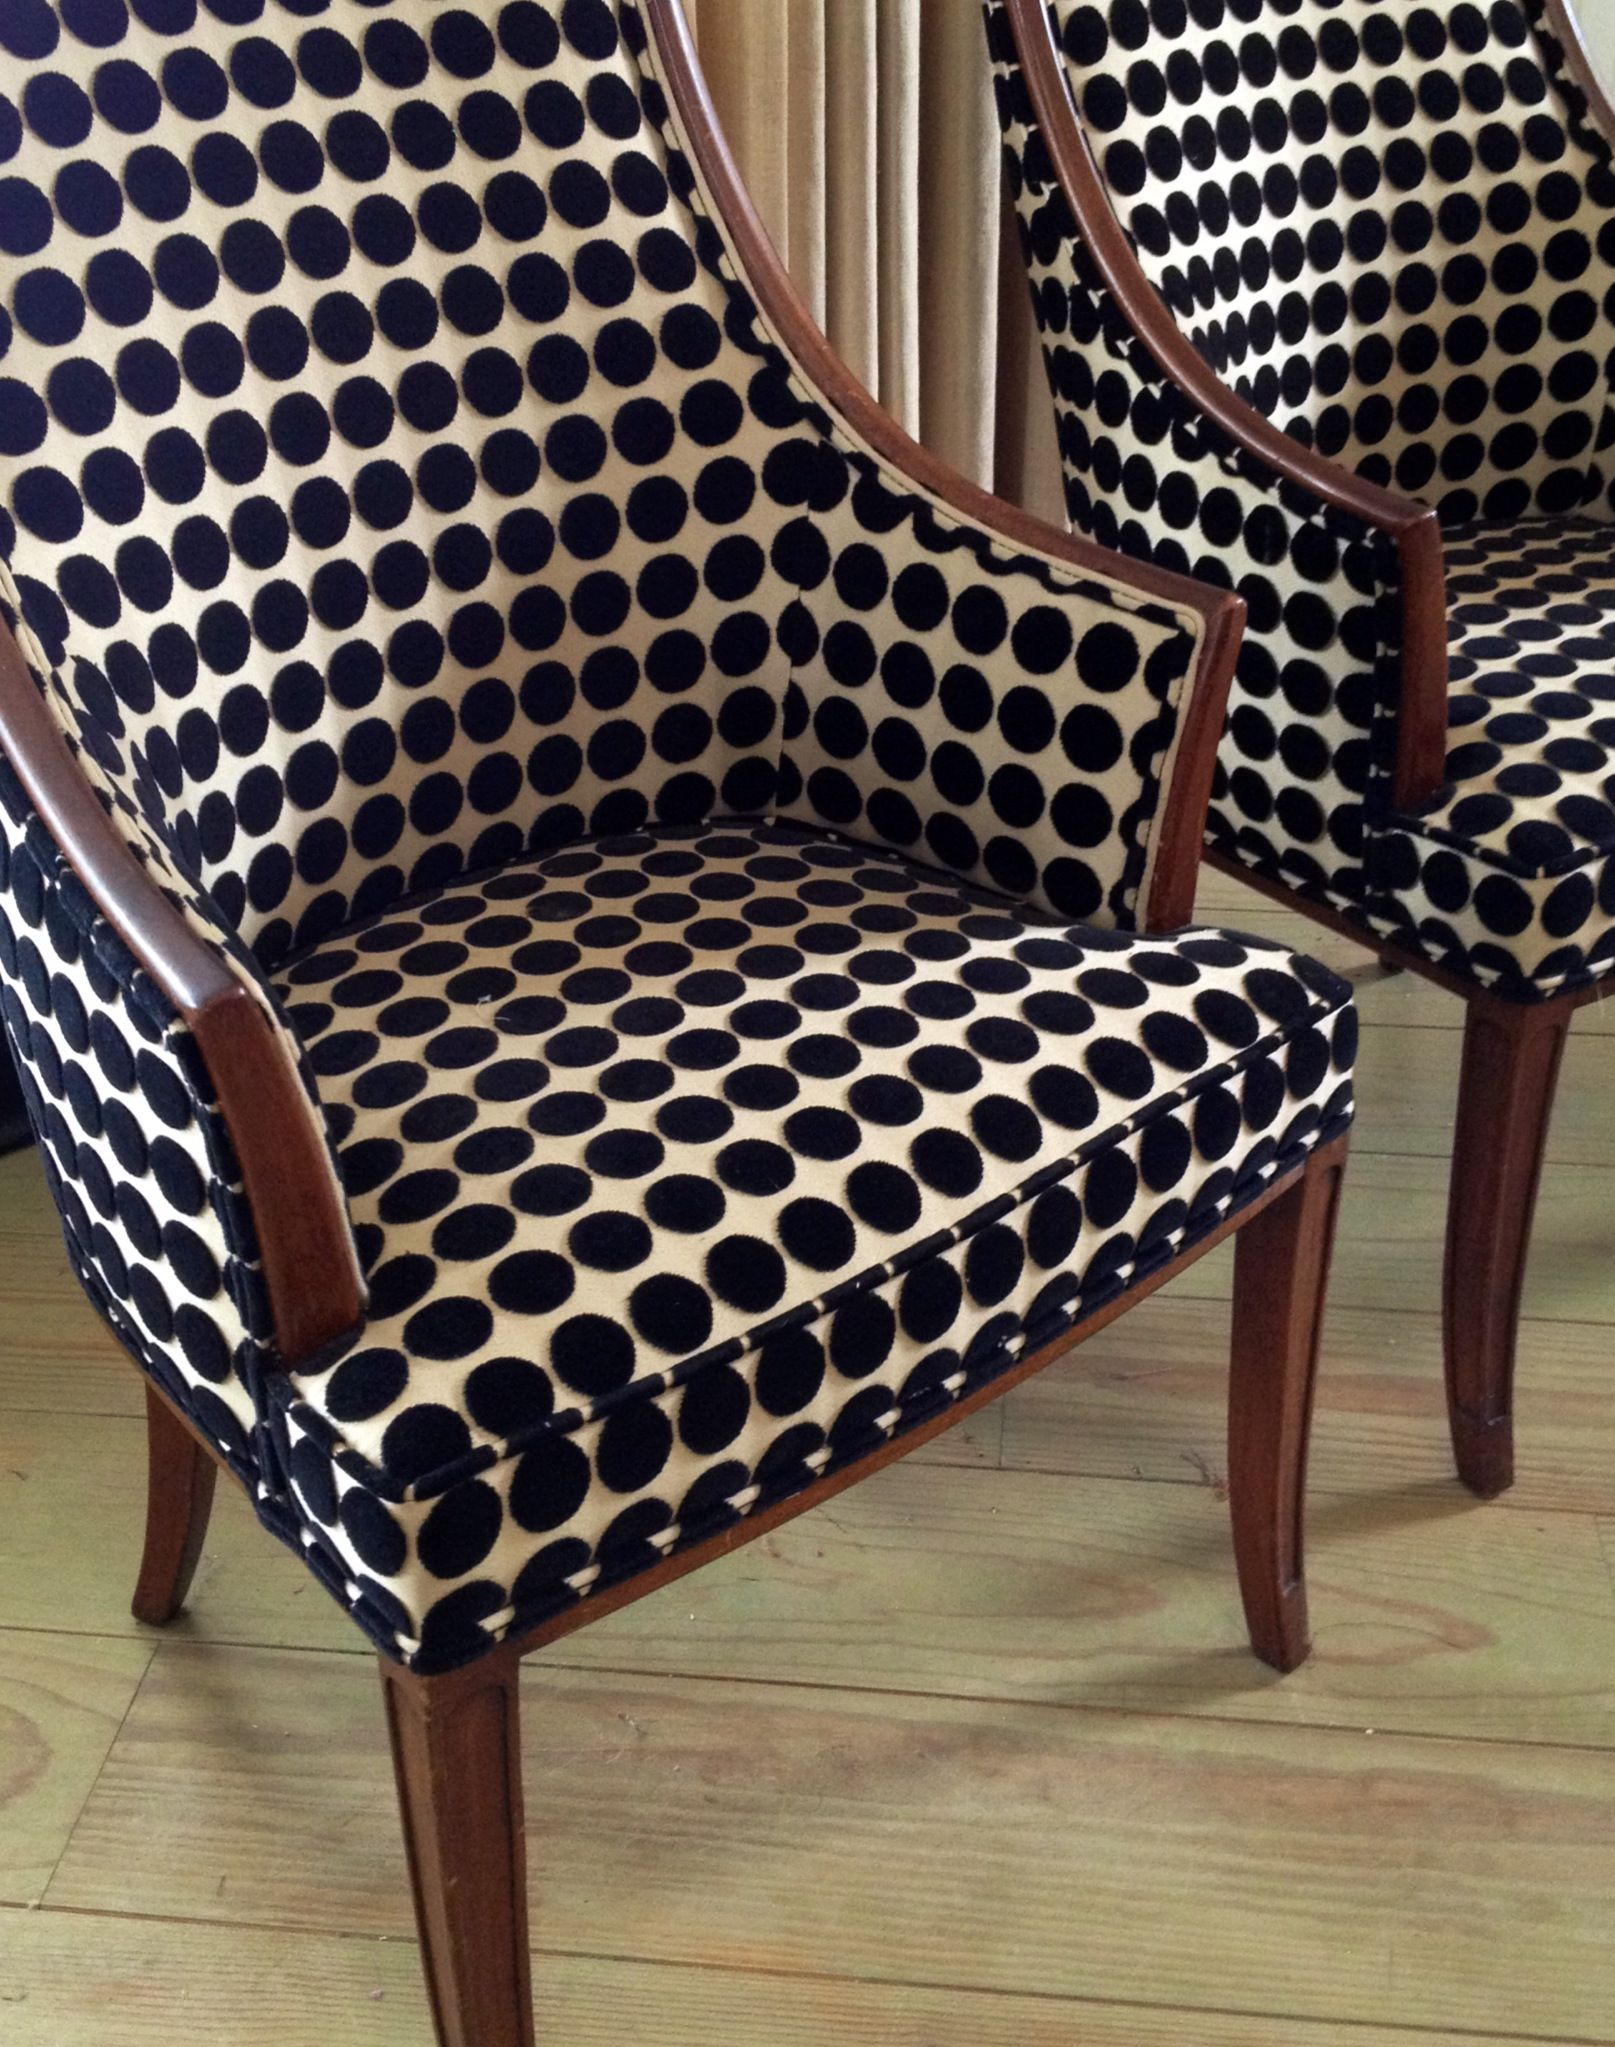 Design Studio Chairs Hickory Chair Vintage